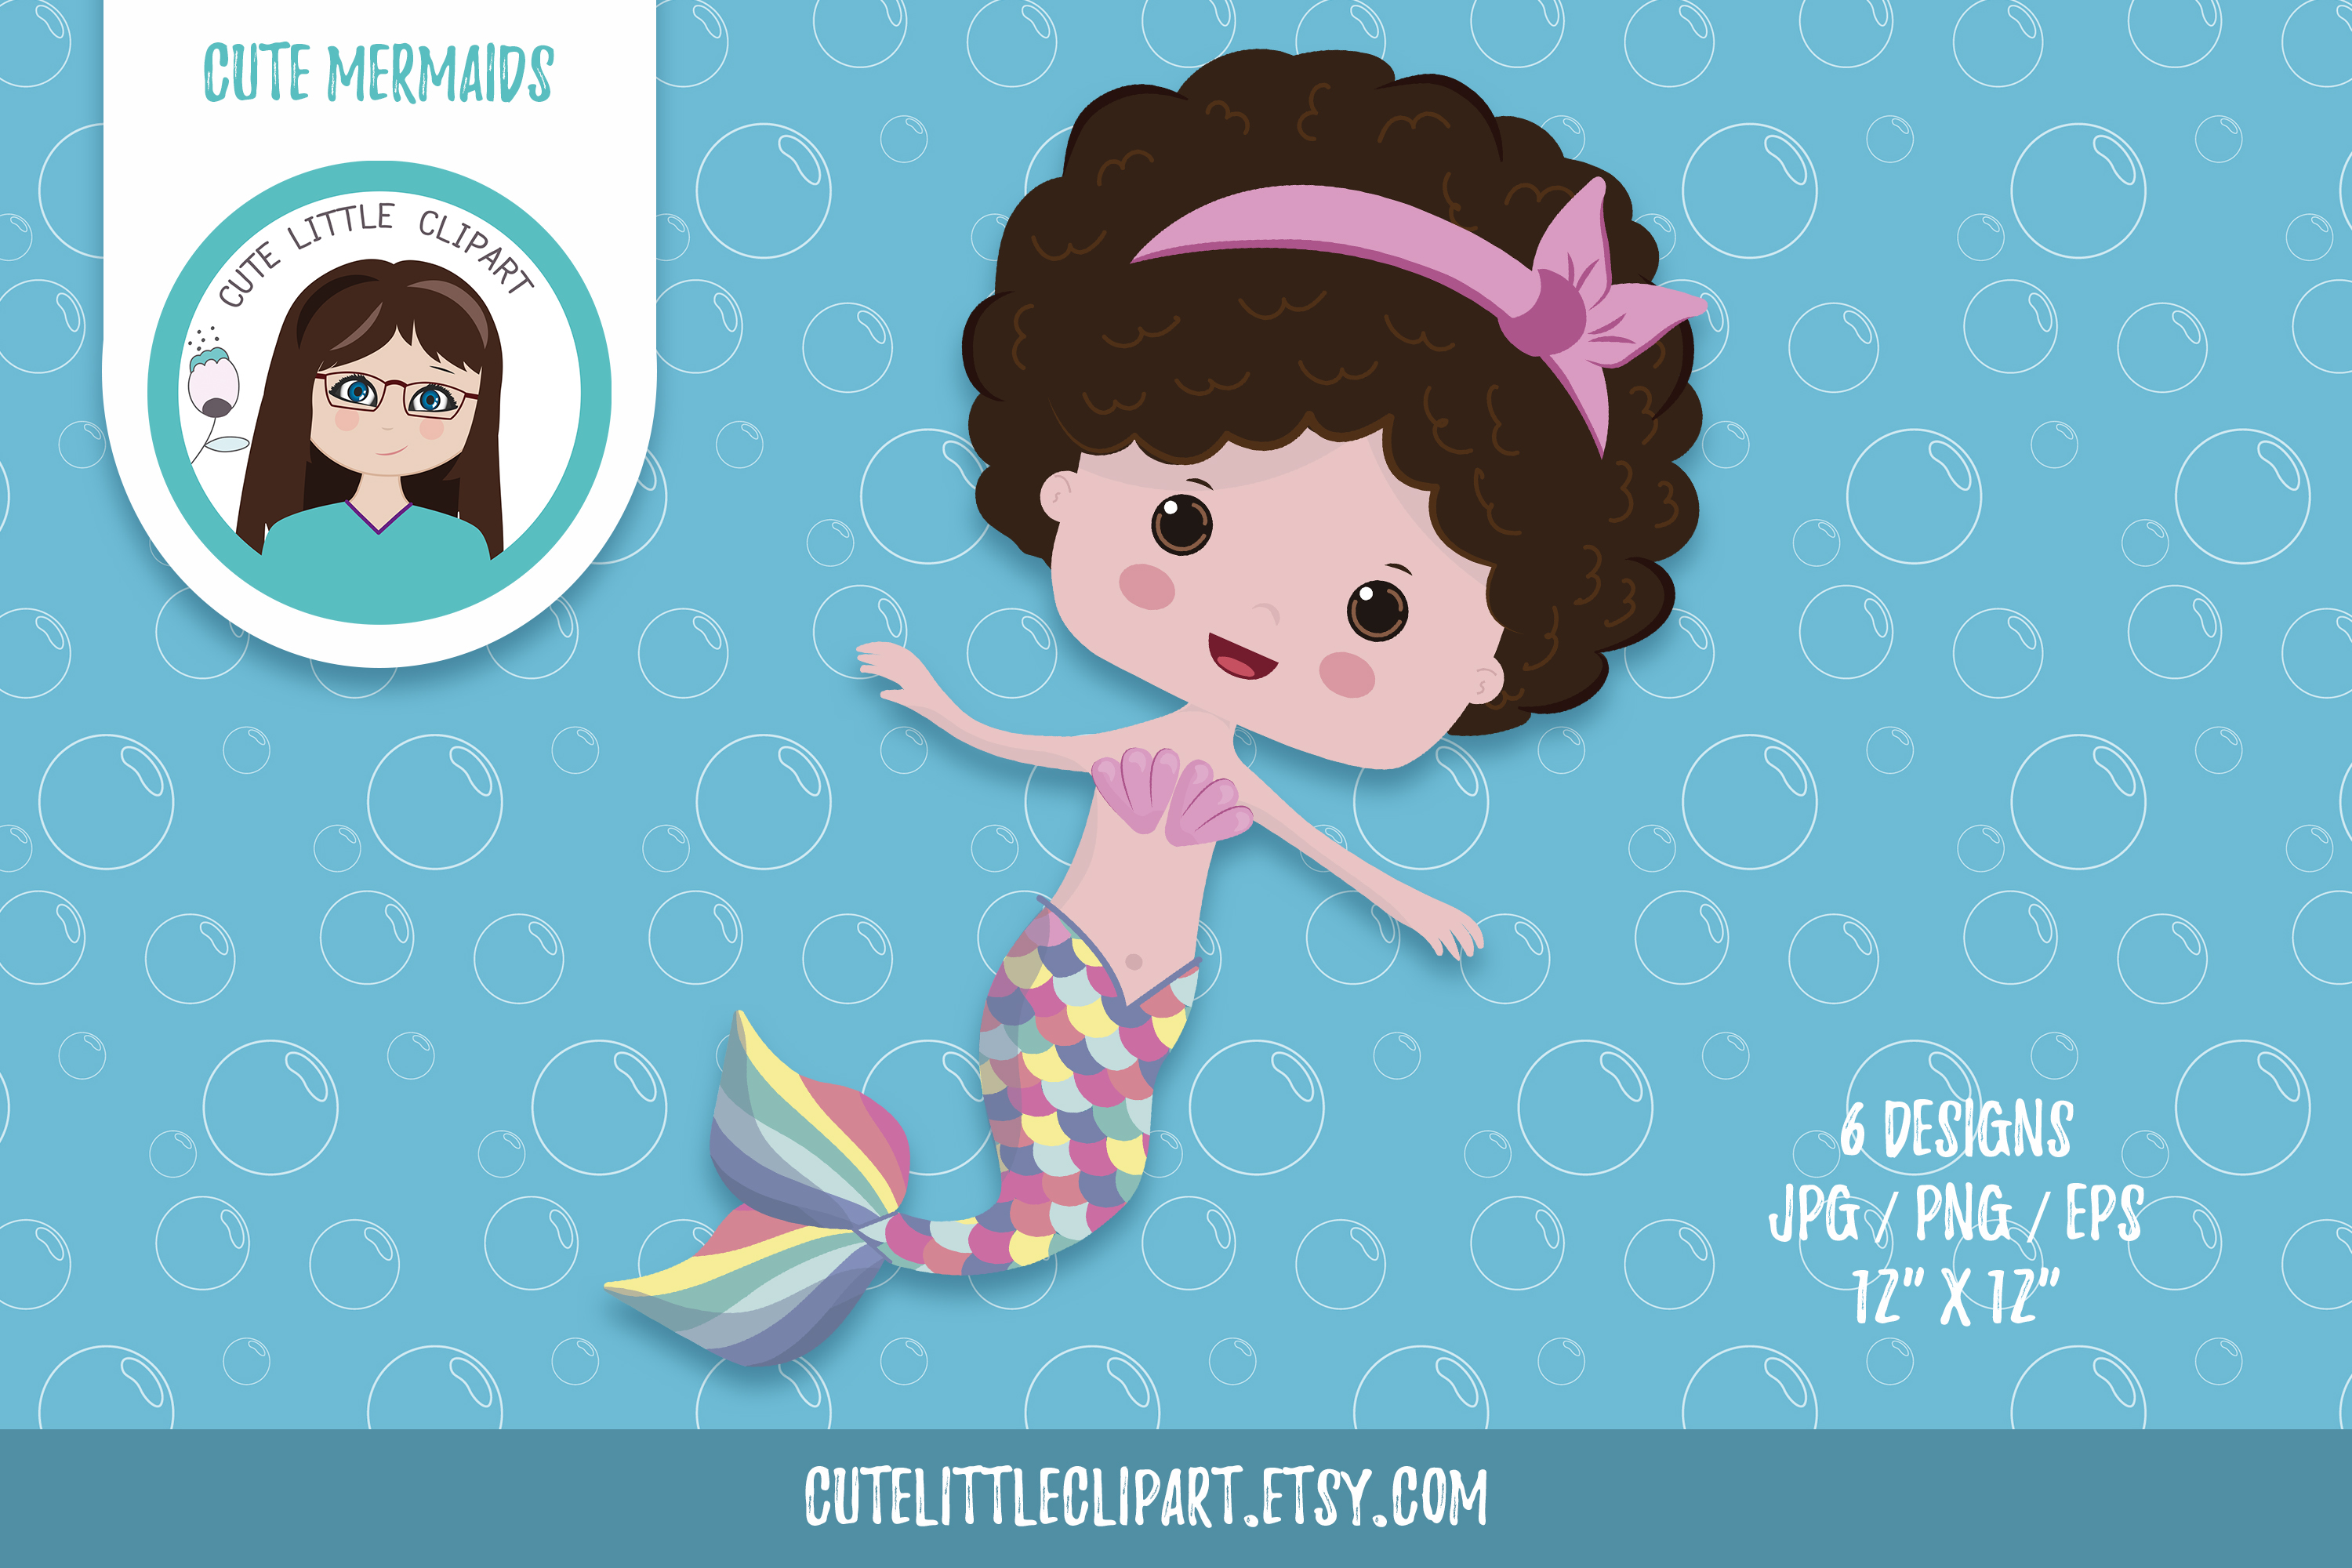 Little mermaid cliparts example image 7